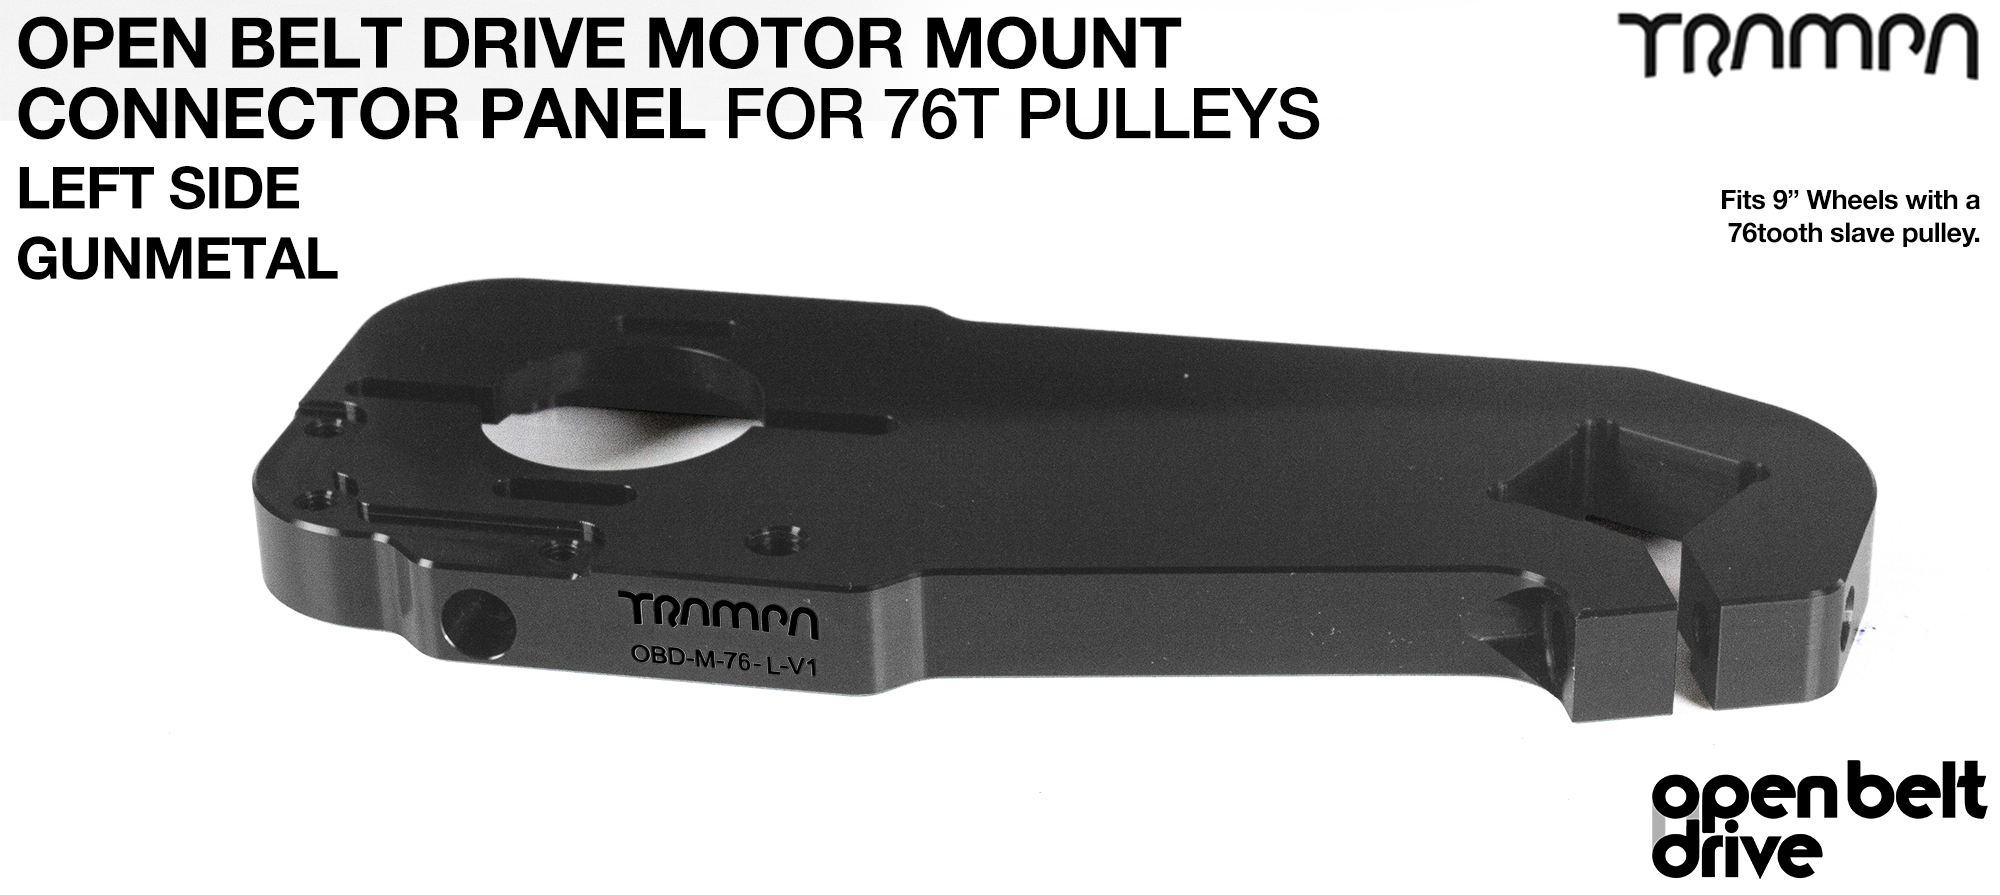 OBD Motor Mount Connector Panel for 76 tooth pulleys - REGULAR - GUNMETAL